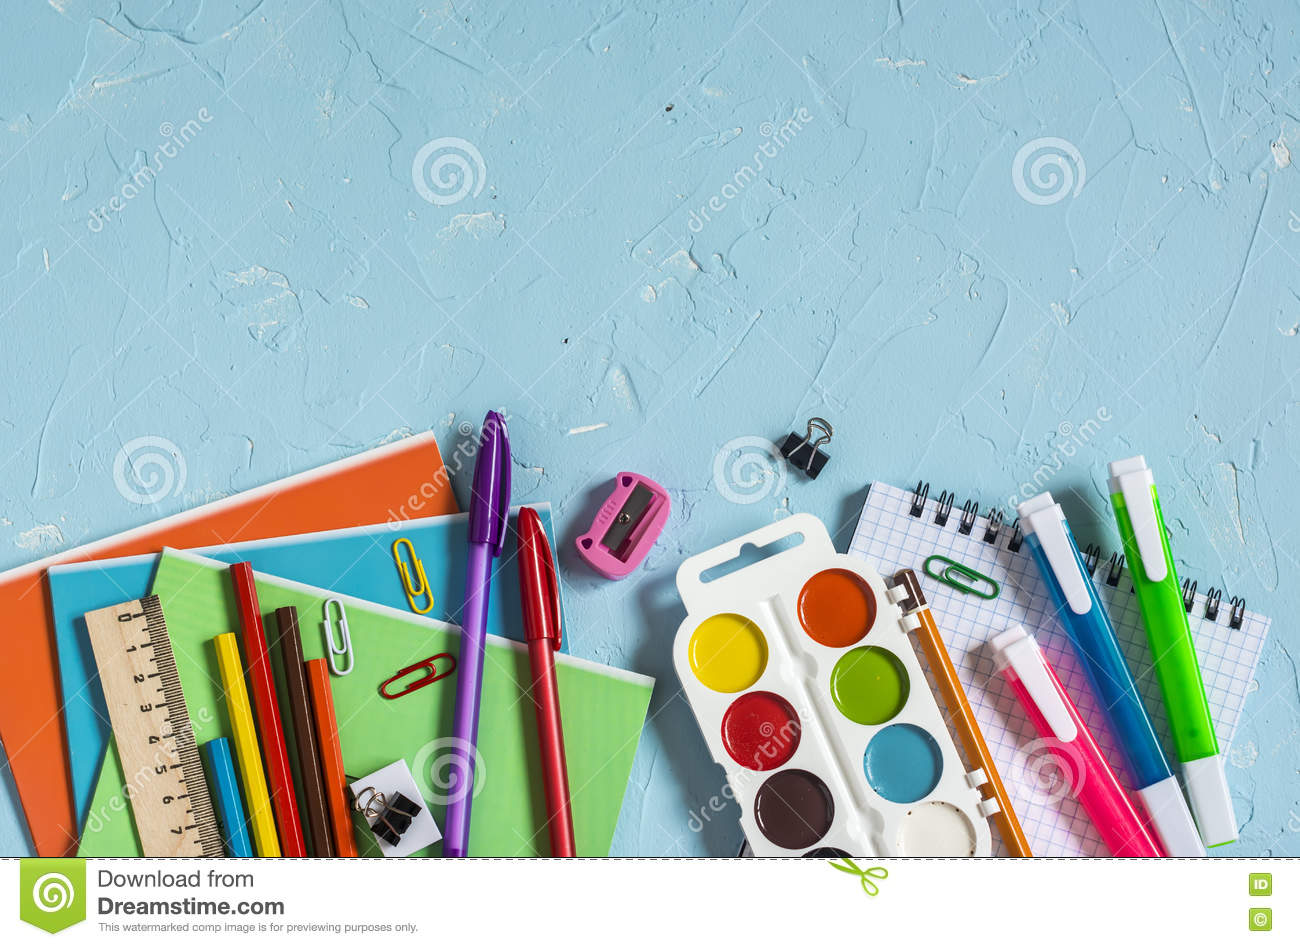 Top View Of School And Office Supplies Royalty Free Stock